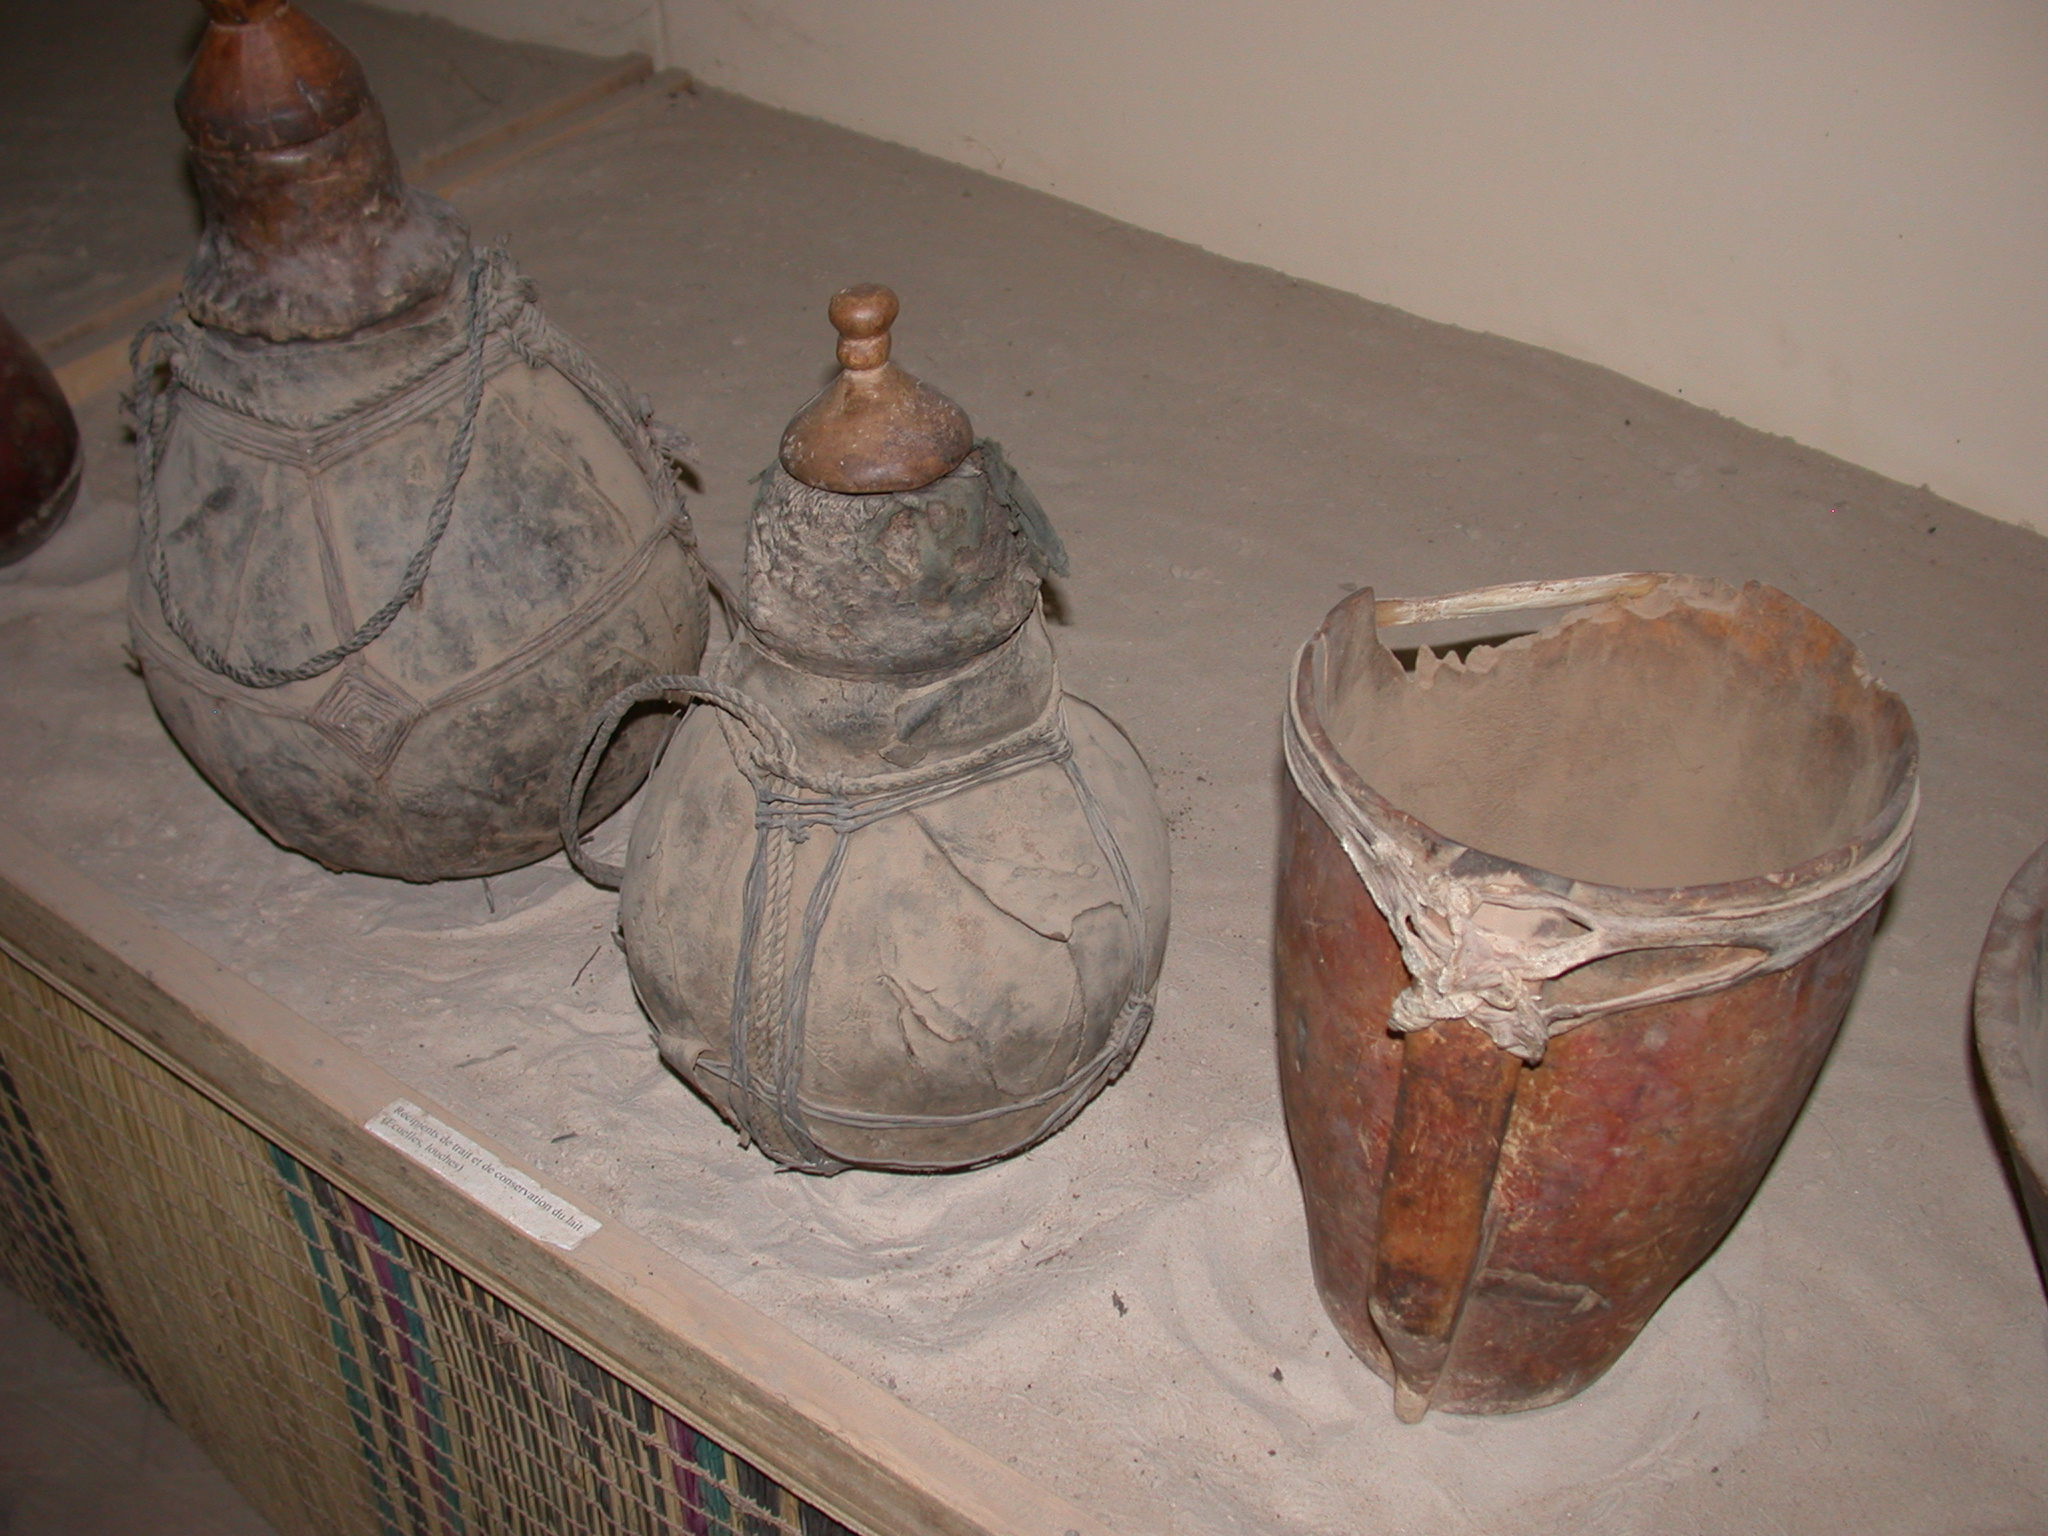 Containers for Milking and Storage of Milk, Bowls, Ladles, Timbuktu Ethnological Museum, Timbuktu, Mali